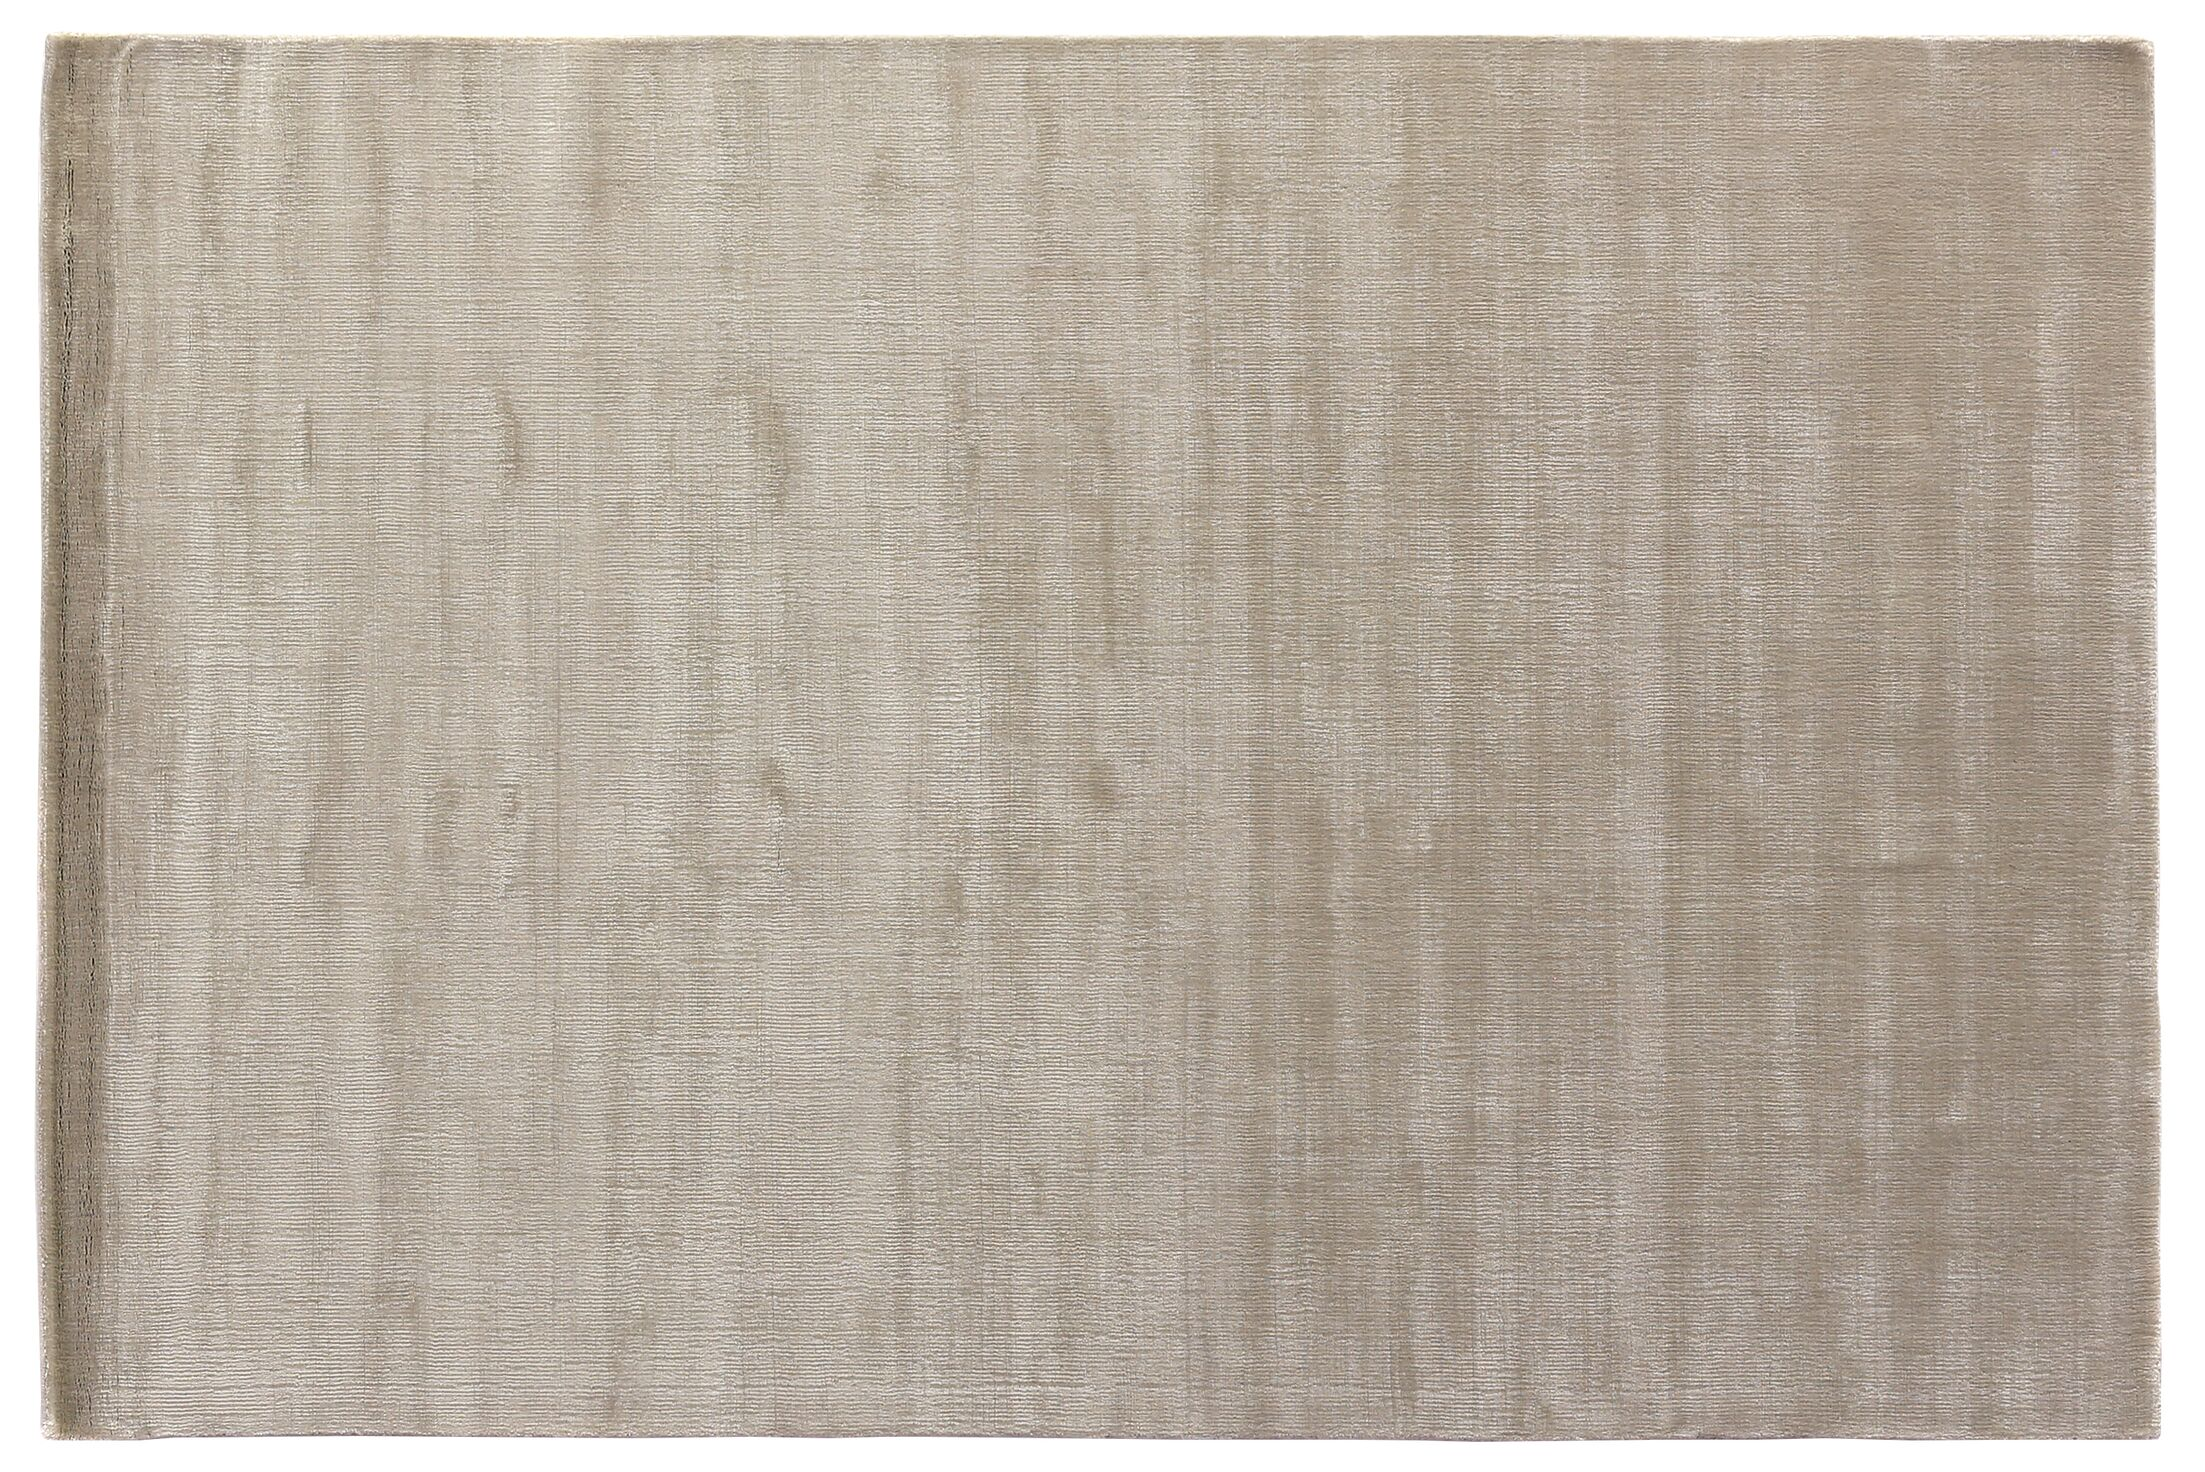 Smart Gem Hand-Woven Light Silver Area Rug Rug Size: 6' x 9'